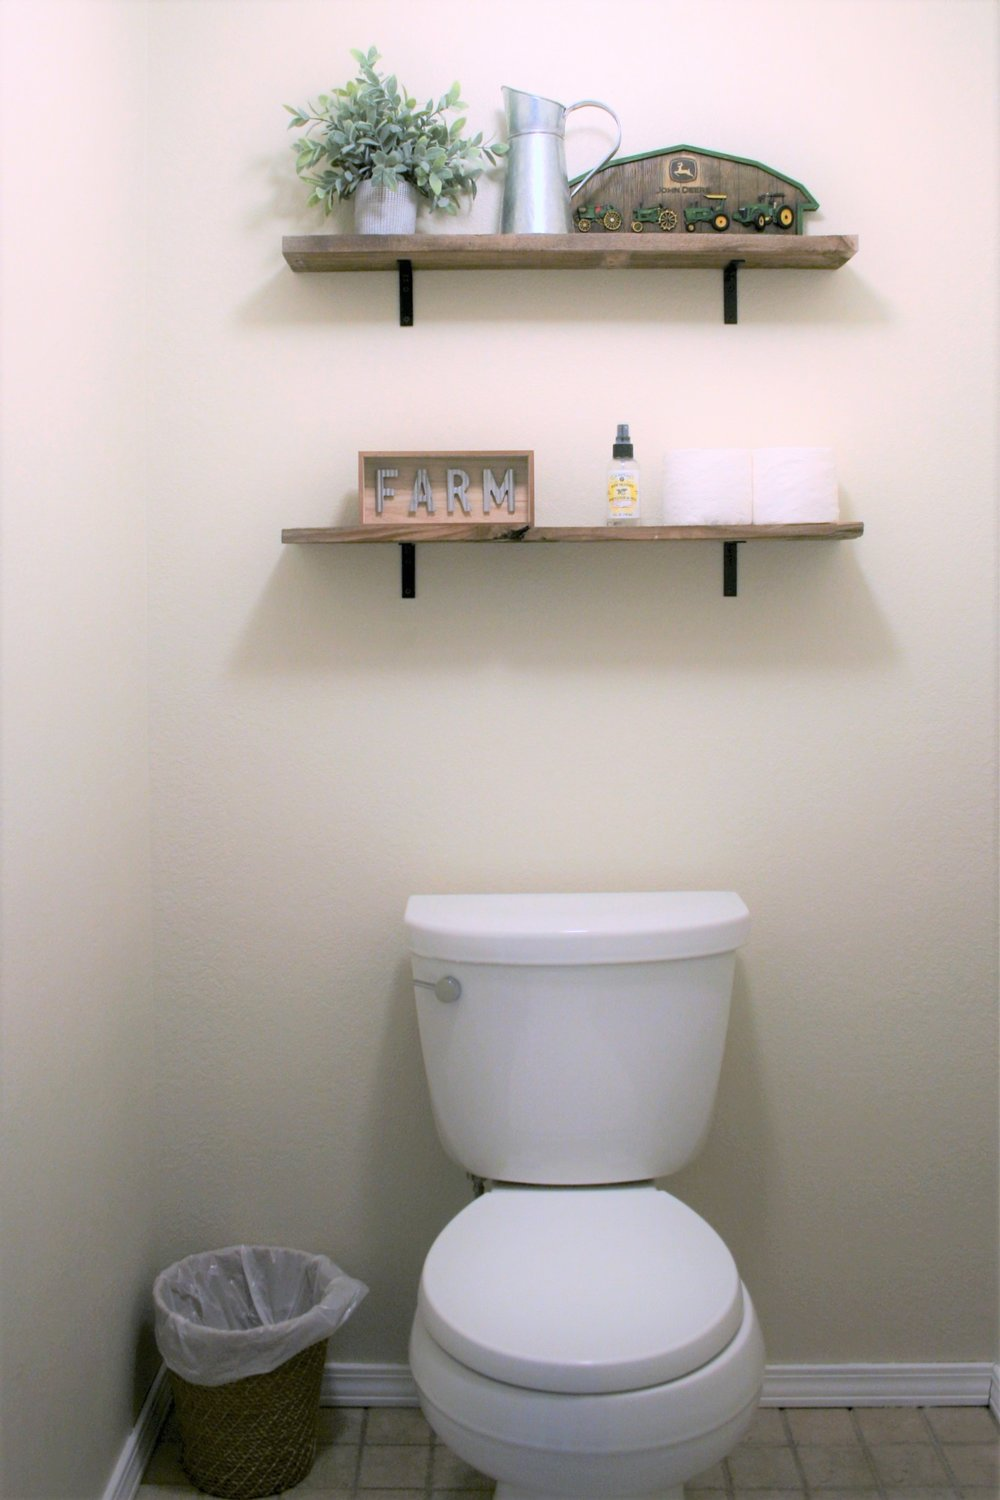 DIY Pallet Shelving Above Toilet | The Little Homeplace